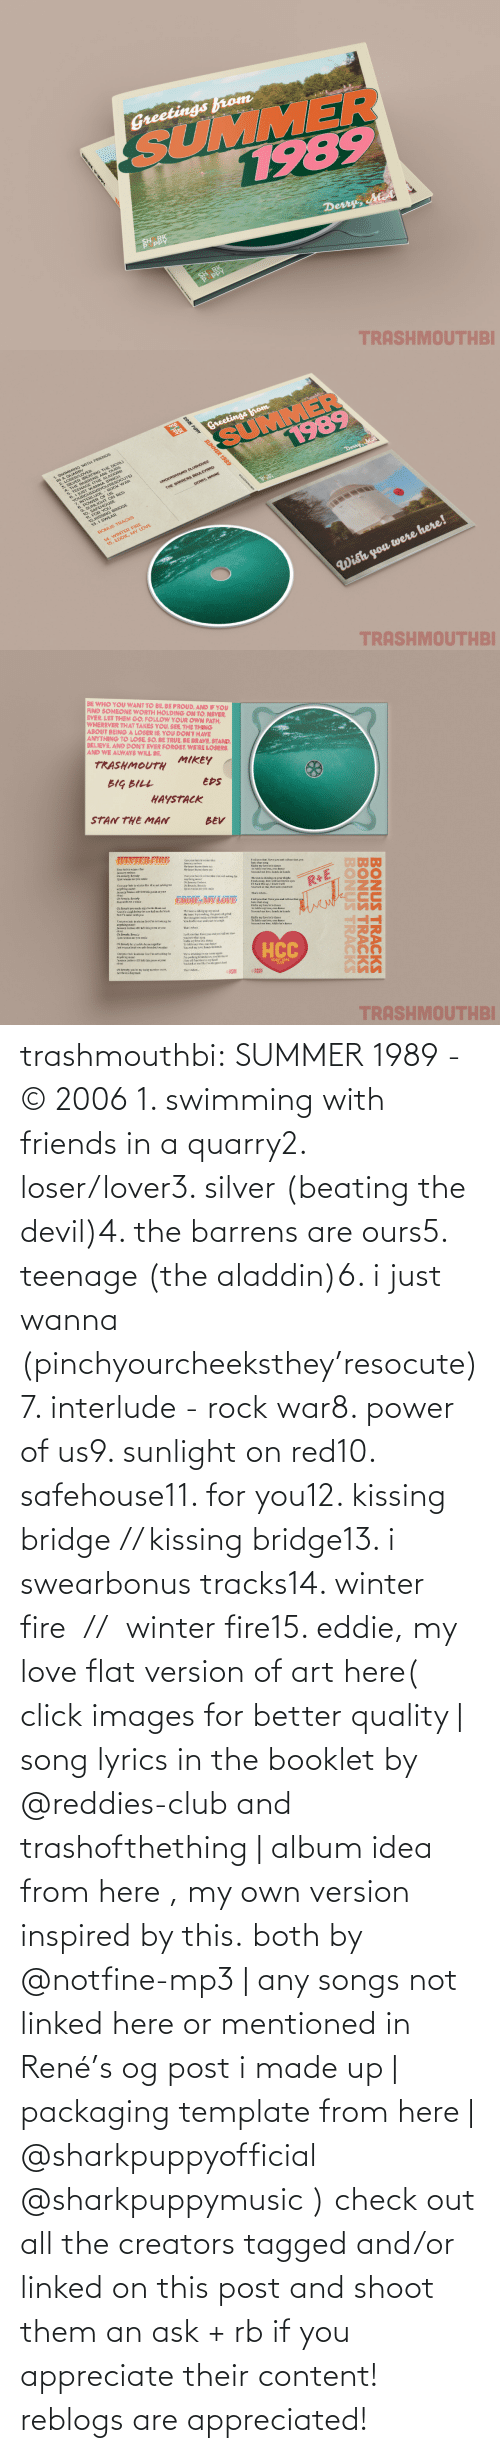 Content: trashmouthbi: SUMMER 1989 - © 2006 1. swimming with friends in a quarry2. loser/lover3. silver (beating the devil)4. the barrens are ours5. teenage (the aladdin)6. i just wanna (pinchyourcheeksthey'resocute)7. interlude - rock war8. power of us9. sunlight on red10. safehouse11. for you12. kissing bridge // kissing bridge13. i swearbonus tracks14. winter fire  //  winter fire15. eddie, my love flat version of art here( click images for better quality | song lyrics in the booklet by @reddies-club​ and trashofthething | album idea from here , my own version inspired by this. both by @notfine-mp3​ | any songs not linked here or mentioned in René's og post i made up | packaging template from here | @sharkpuppyofficial​ @sharkpuppymusic​ ) check out all the creators tagged and/or linked on this post and shoot them an ask + rb if you appreciate their content! reblogs are appreciated!